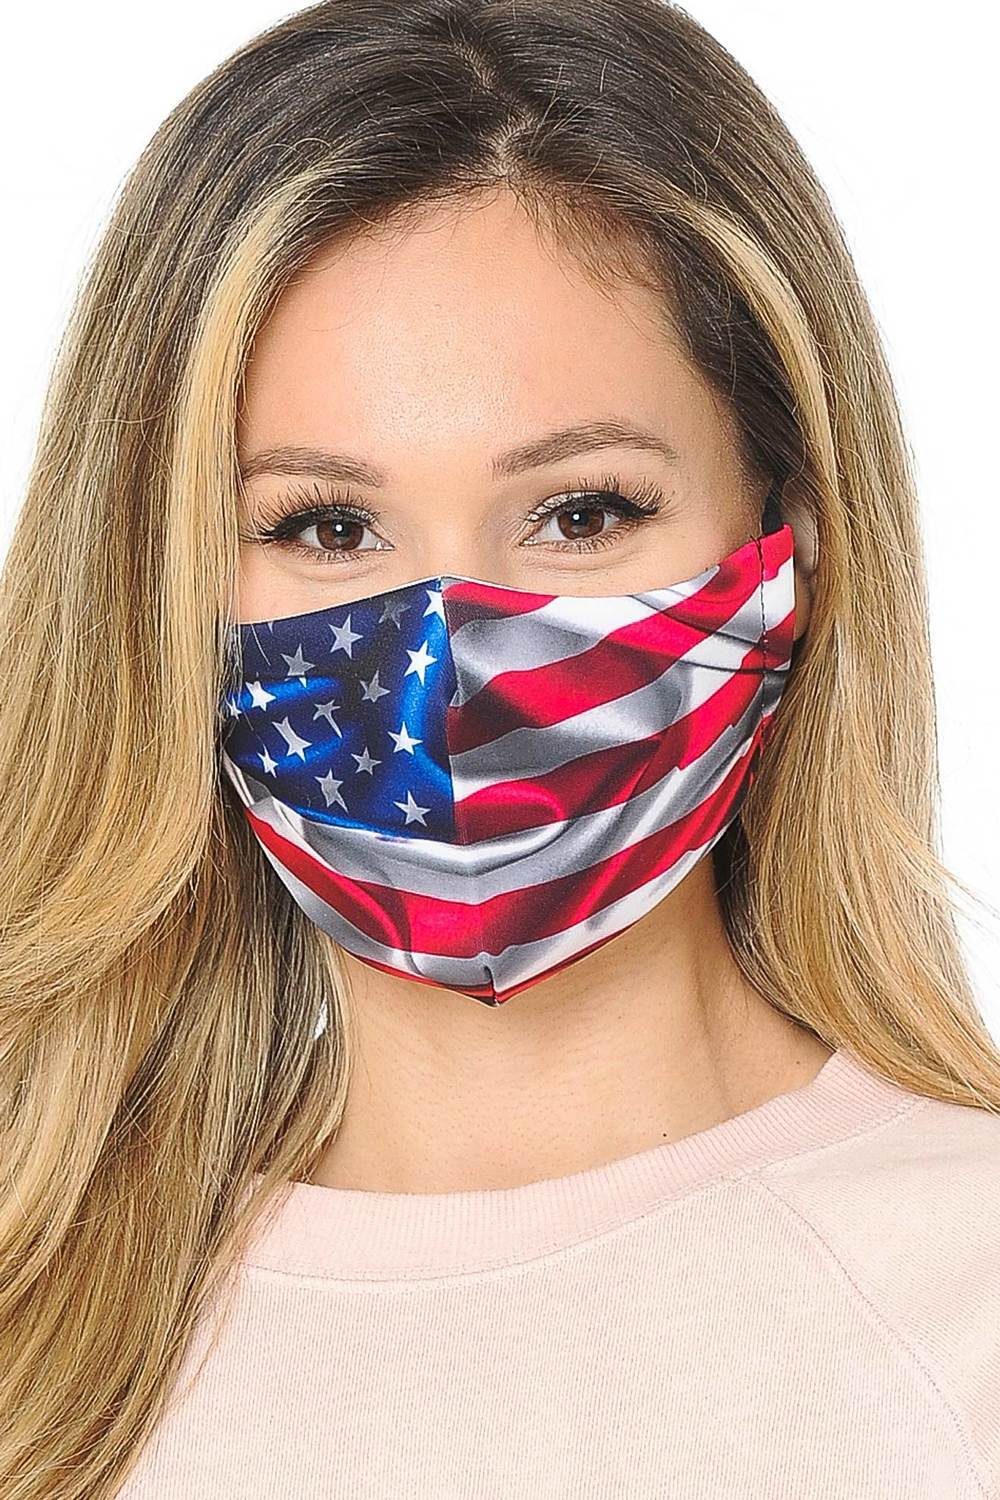 Fiumara Apparel USA Flag Graphic Print Face Mask -2 Pack